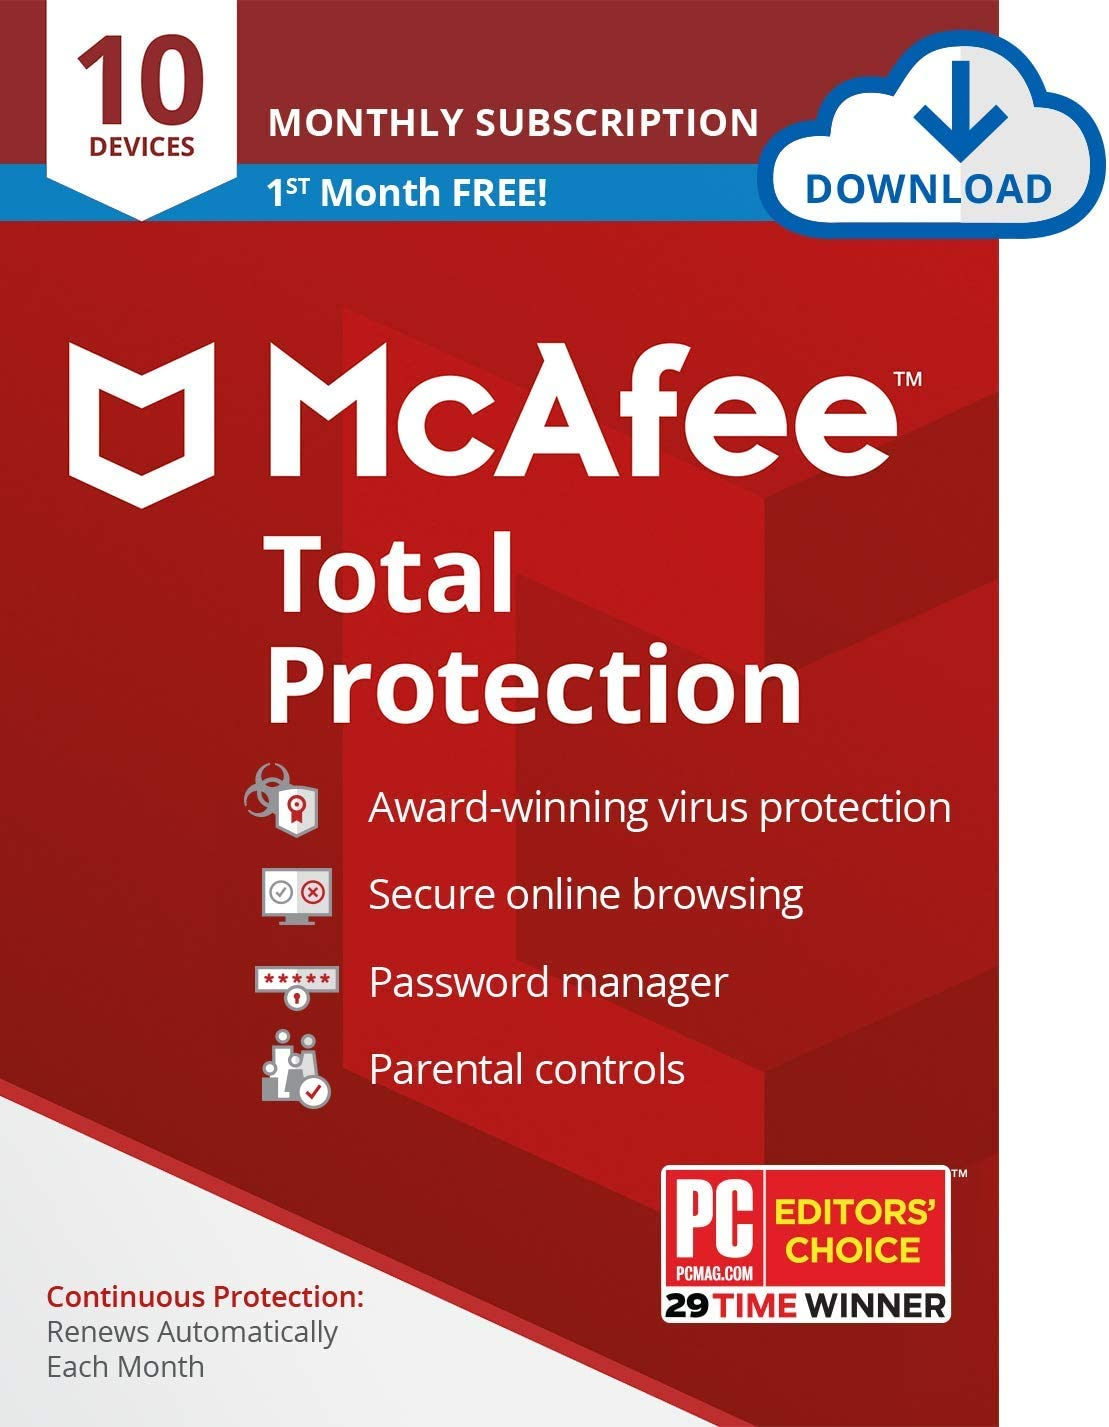 McAfee Total Protection 2020 Antivirus Internet Security Software, 10 Device Password Manager, Parental Control, Privacy, 30 Days Free with Monthly Auto Renewal - Amazon Exclusive Subscription